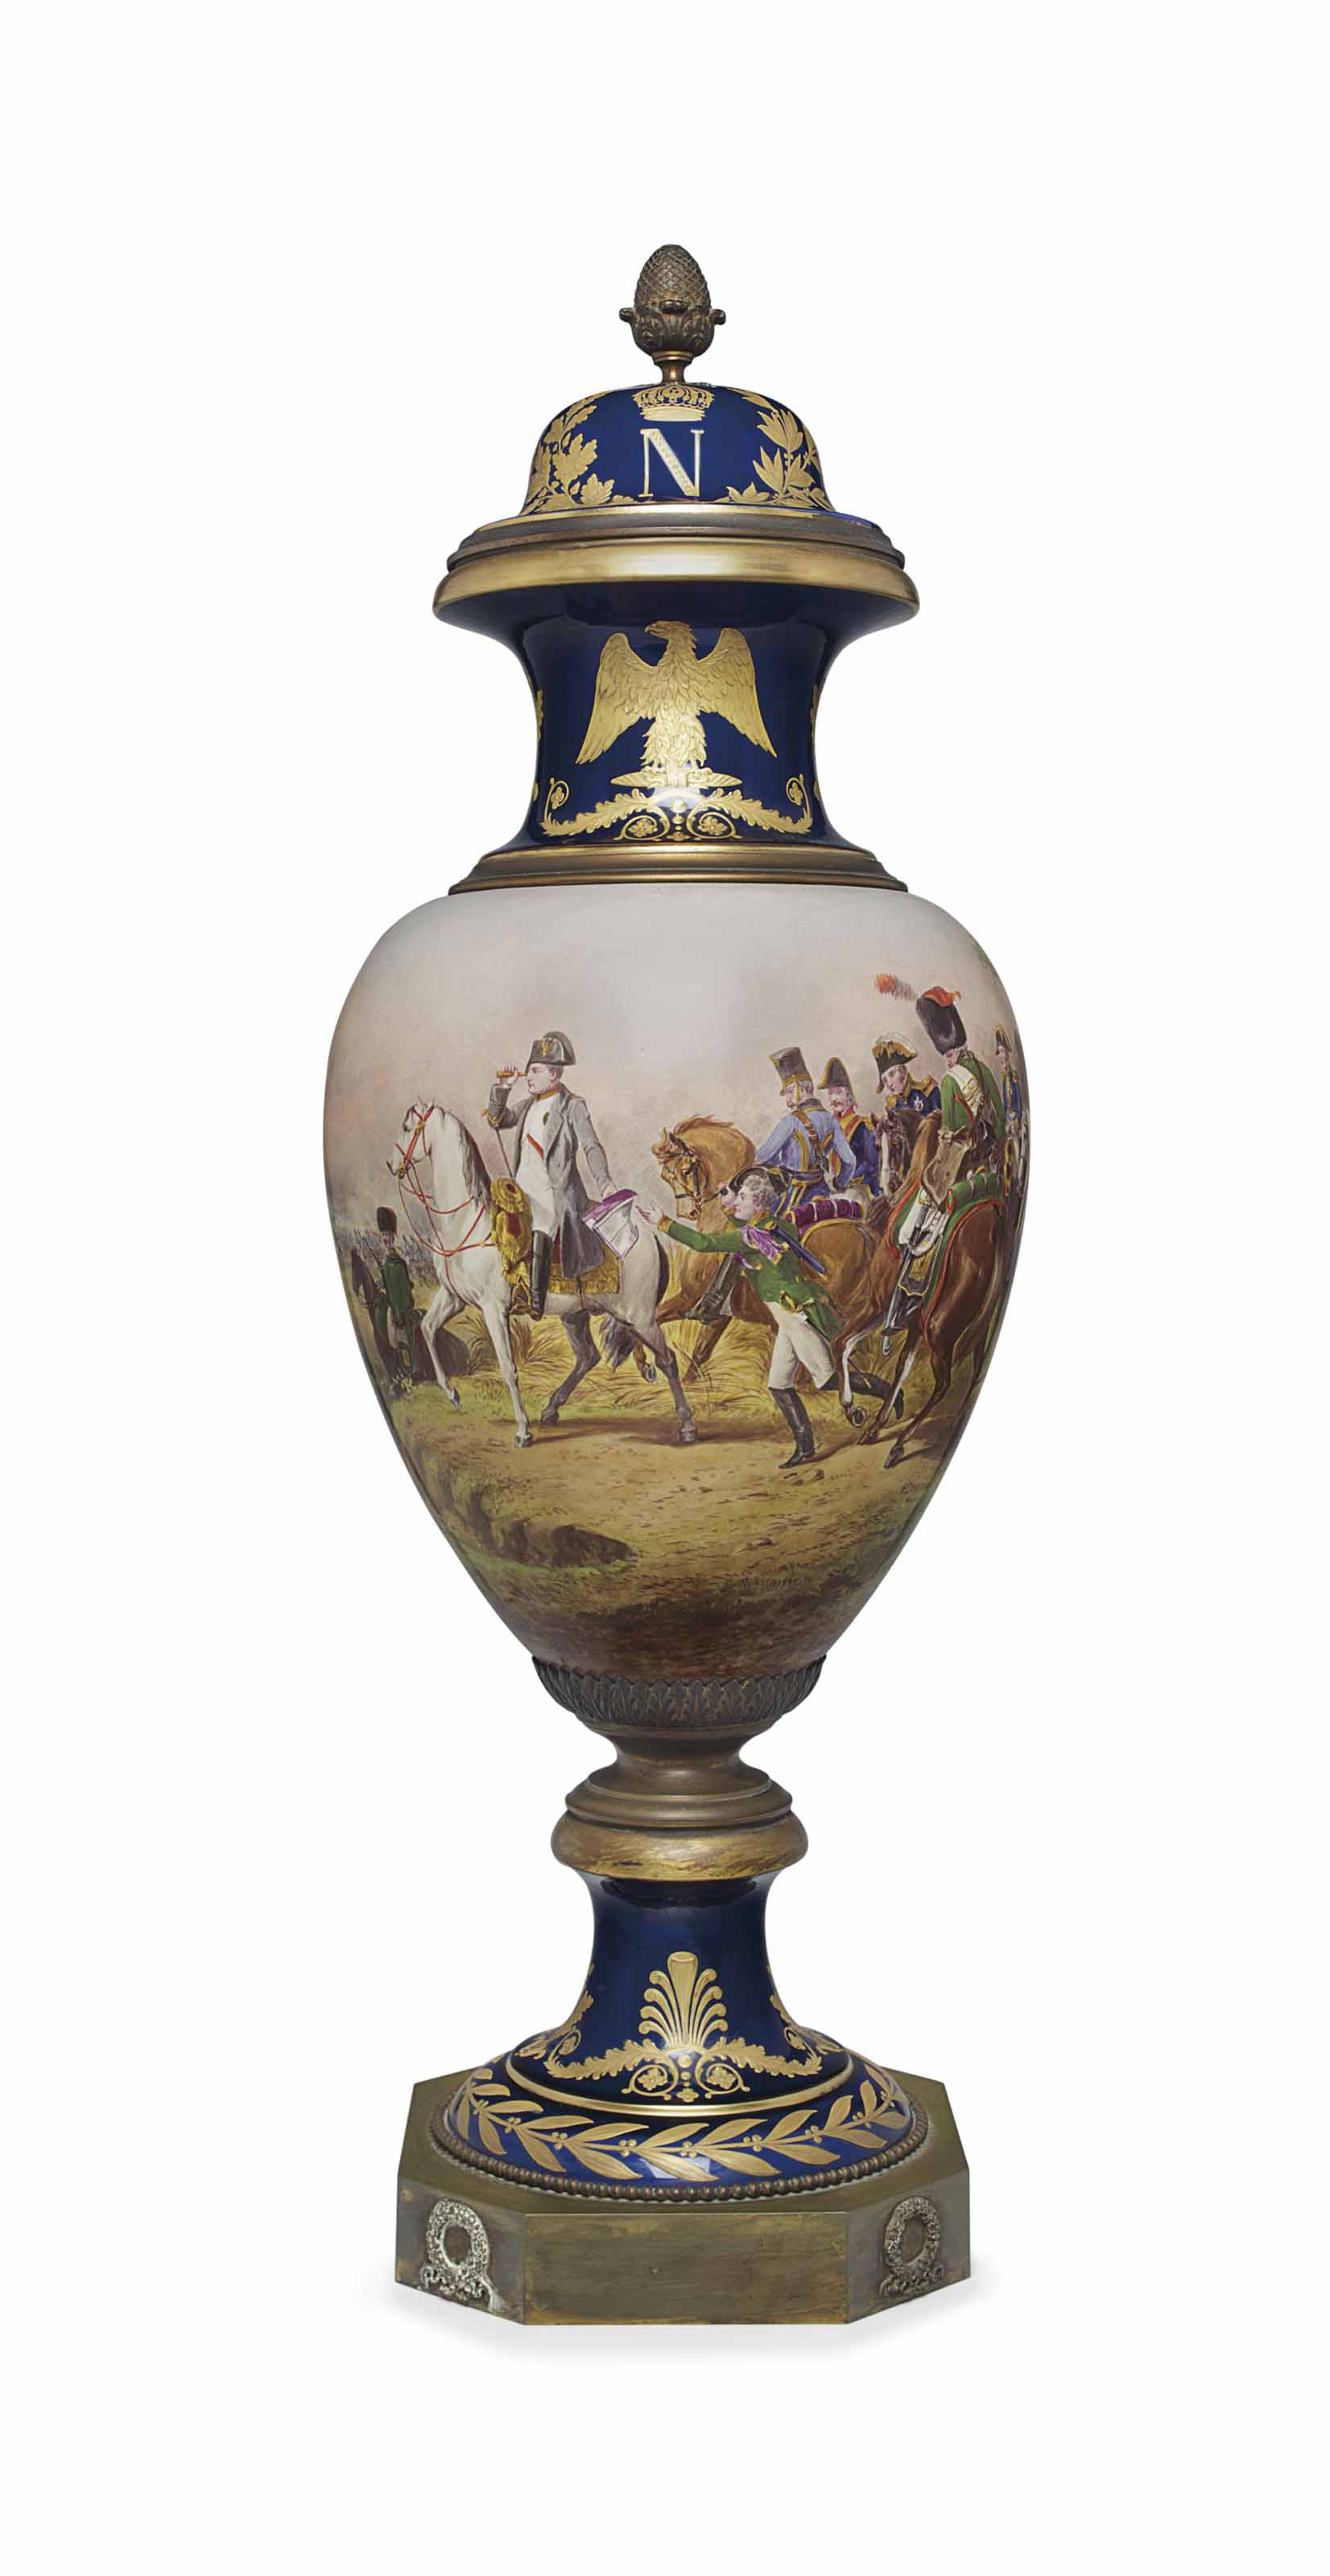 AN ORMOLU-MOUNTED SEVRES STYLE PORCELAIN NAPOLEONIC COBALT-BLUE GROUND VASE AND COVER